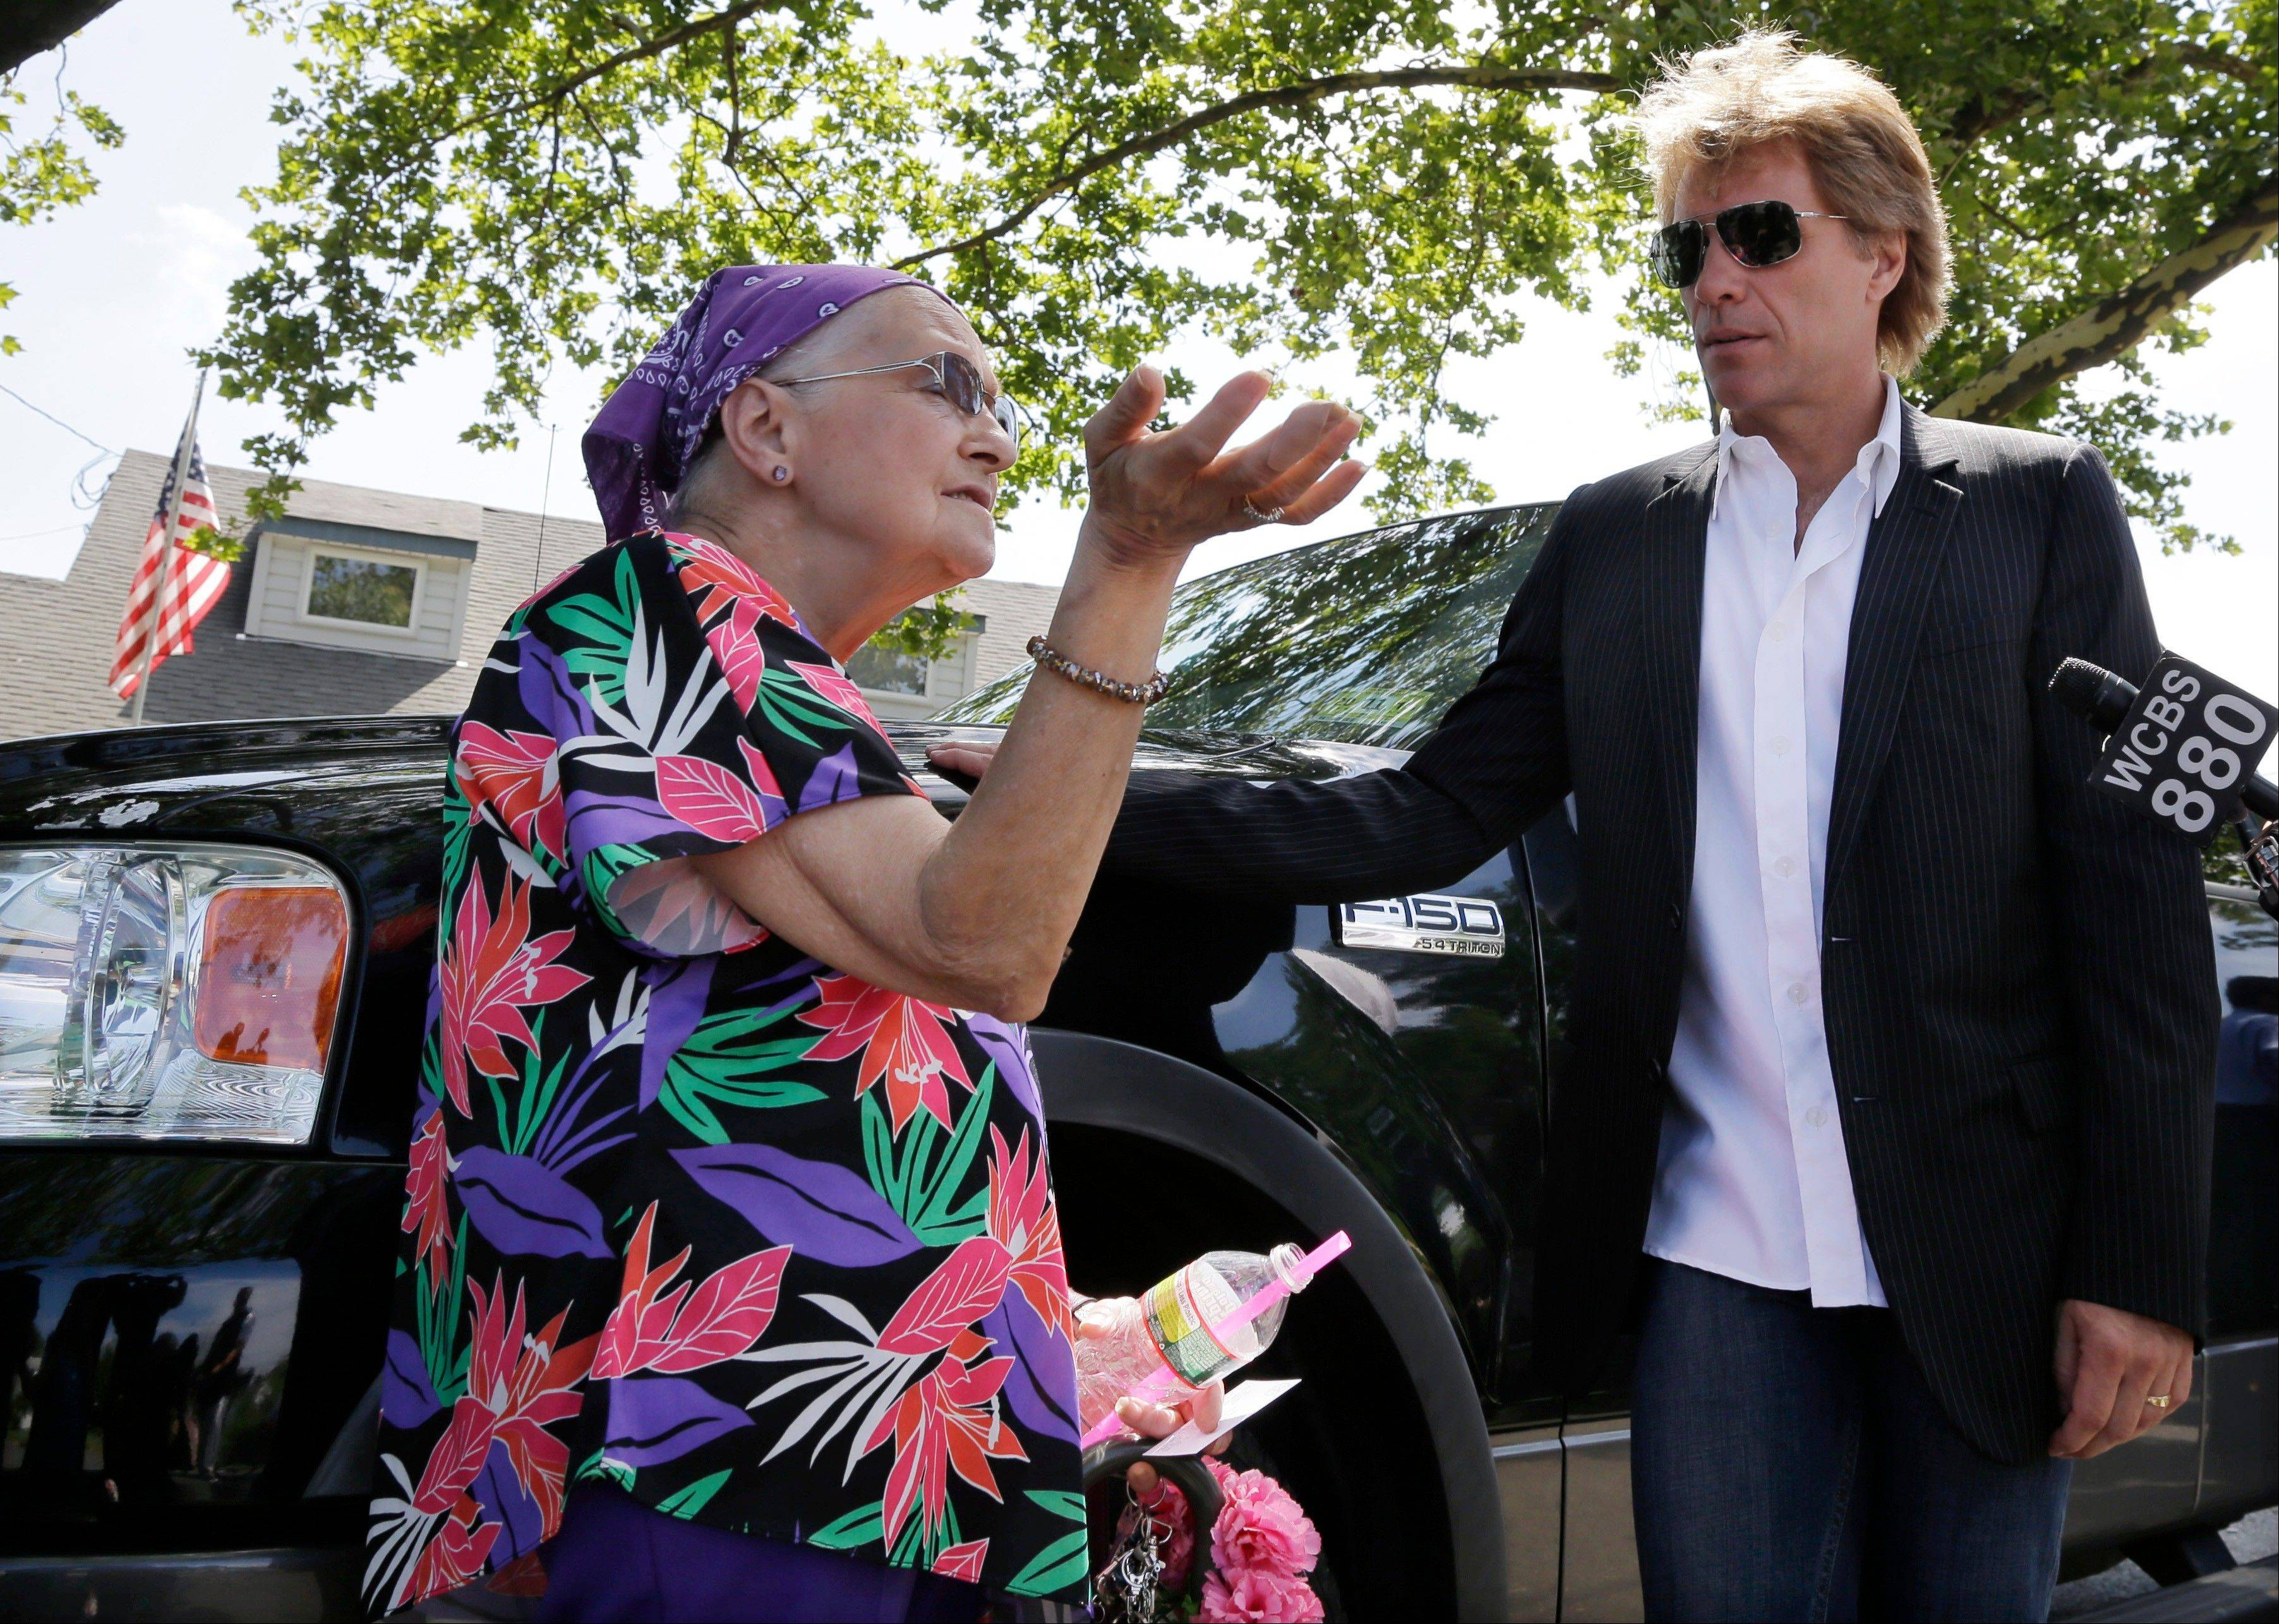 Sharon Mary Atkinson describes some of the devastation from Superstorm Sandy to singer Jon Bon Jovi, right, as he walked through his hometown of Sayreville, N.J., with New Jersey Gov. Chris Christie. Bon Jovi is giving $1 million to help the band�s home state recover from Superstorm Sandy.